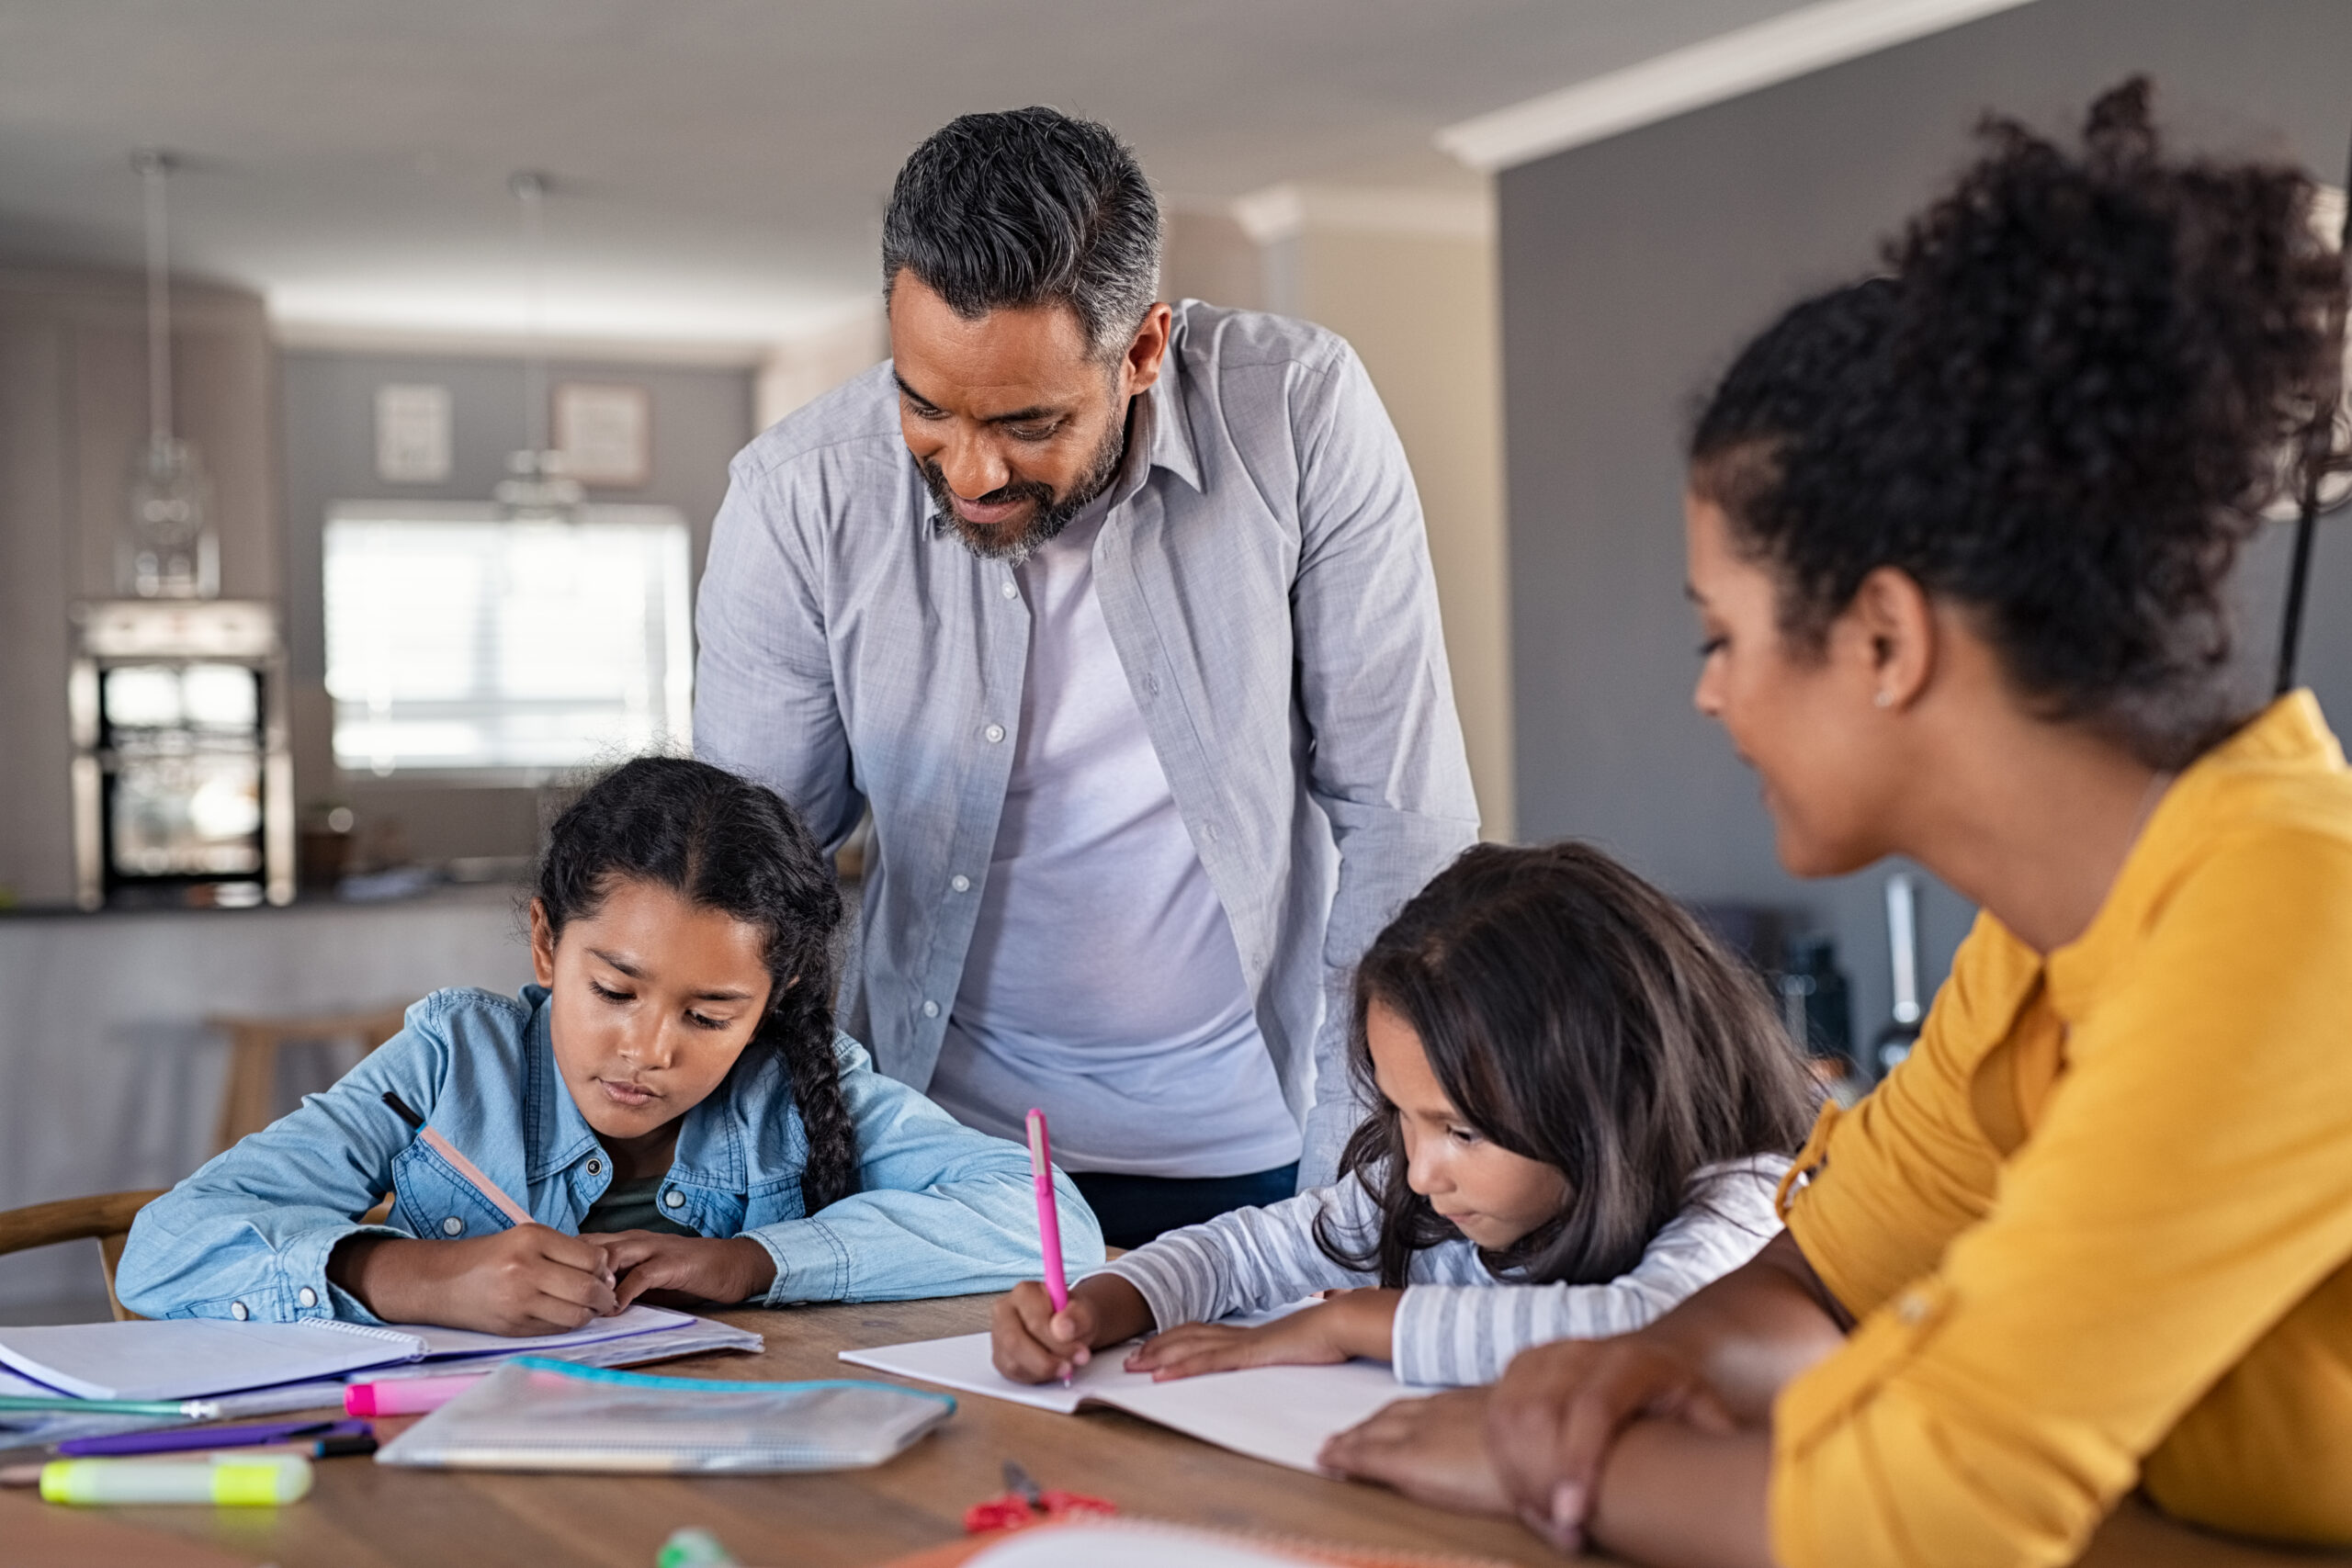 Is Homework an Outdated Concept or A Necessary Process that could be Enjoyed?